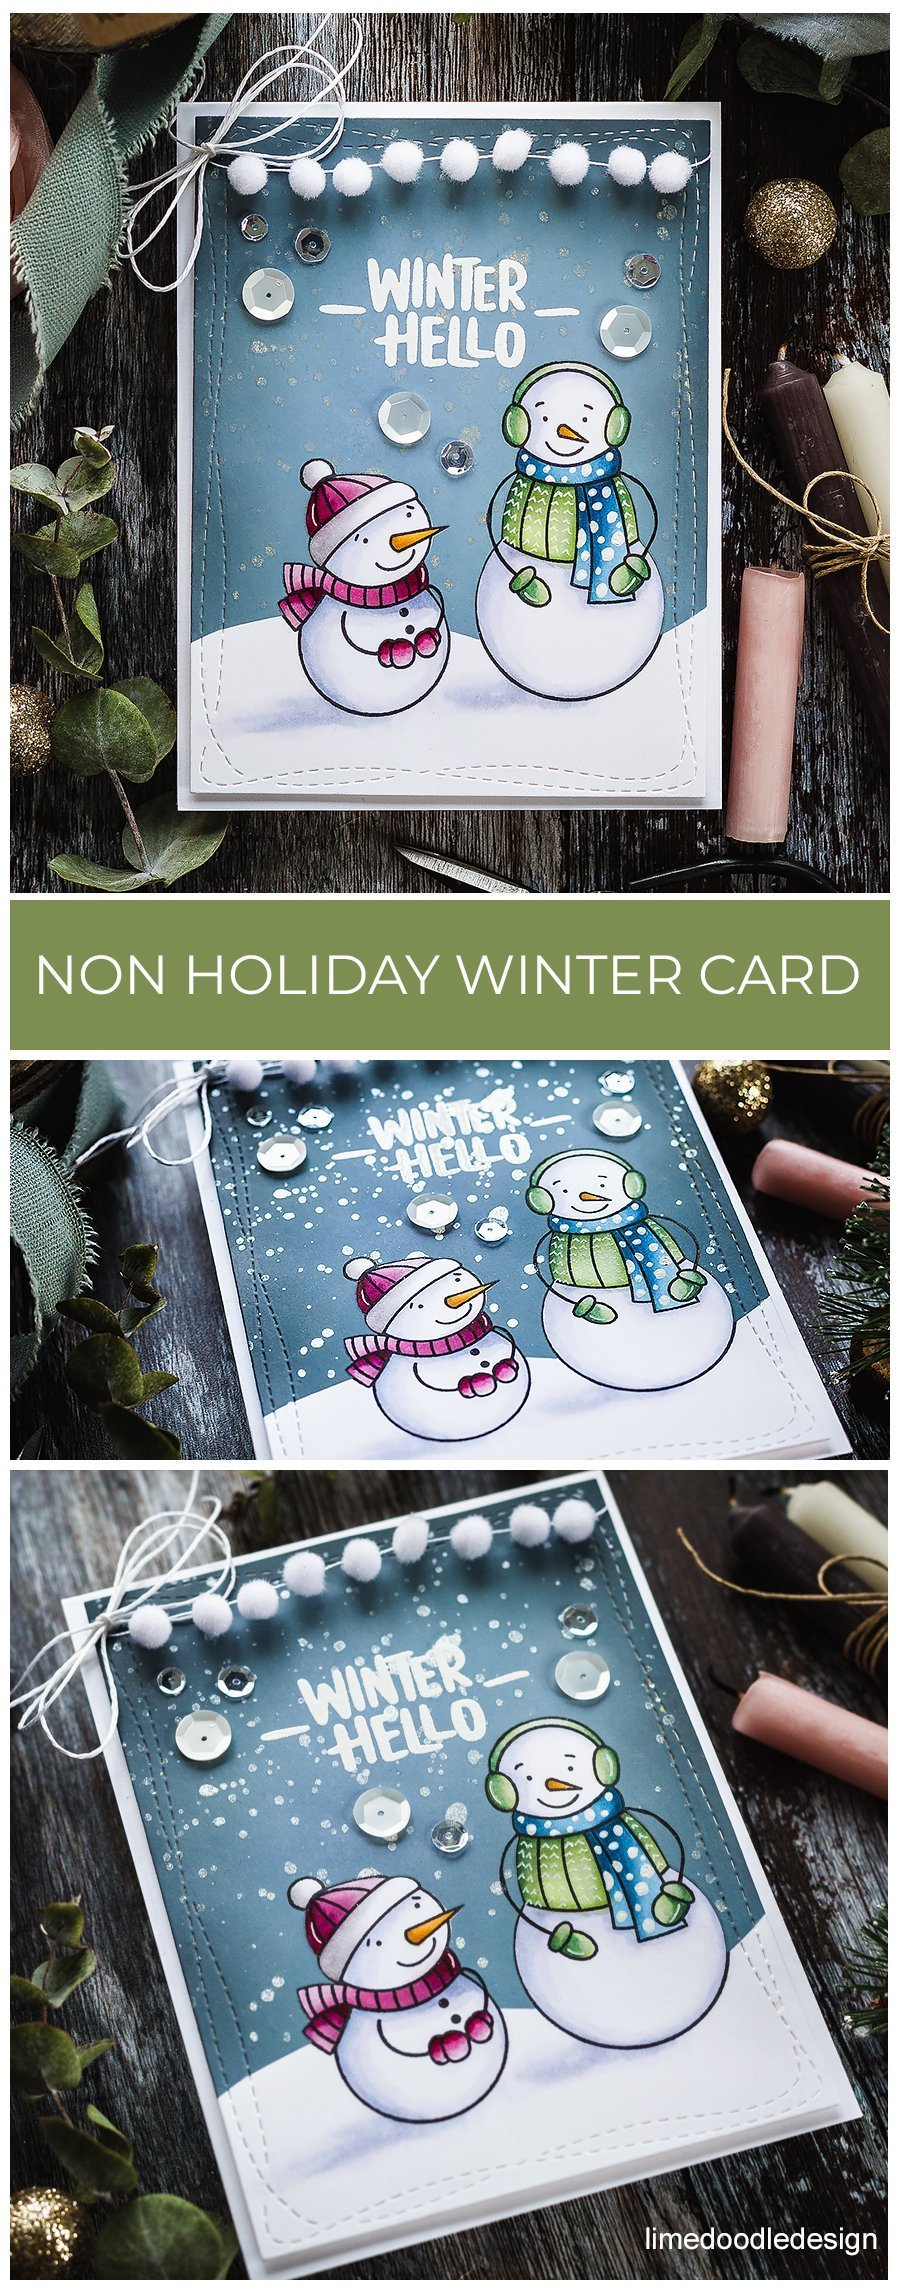 Video - taking a look inside a Simon Says Stamp card kit and creating a non-holiday winter card while also taking a first look at the Picket Fence Blender Brush set. Handmade card by Debby Hughes. Find out more here: https://limedoodledesign.com/2018/12/video-non-holiday-winter-card-SSS-card-kit-blender-brush-set/